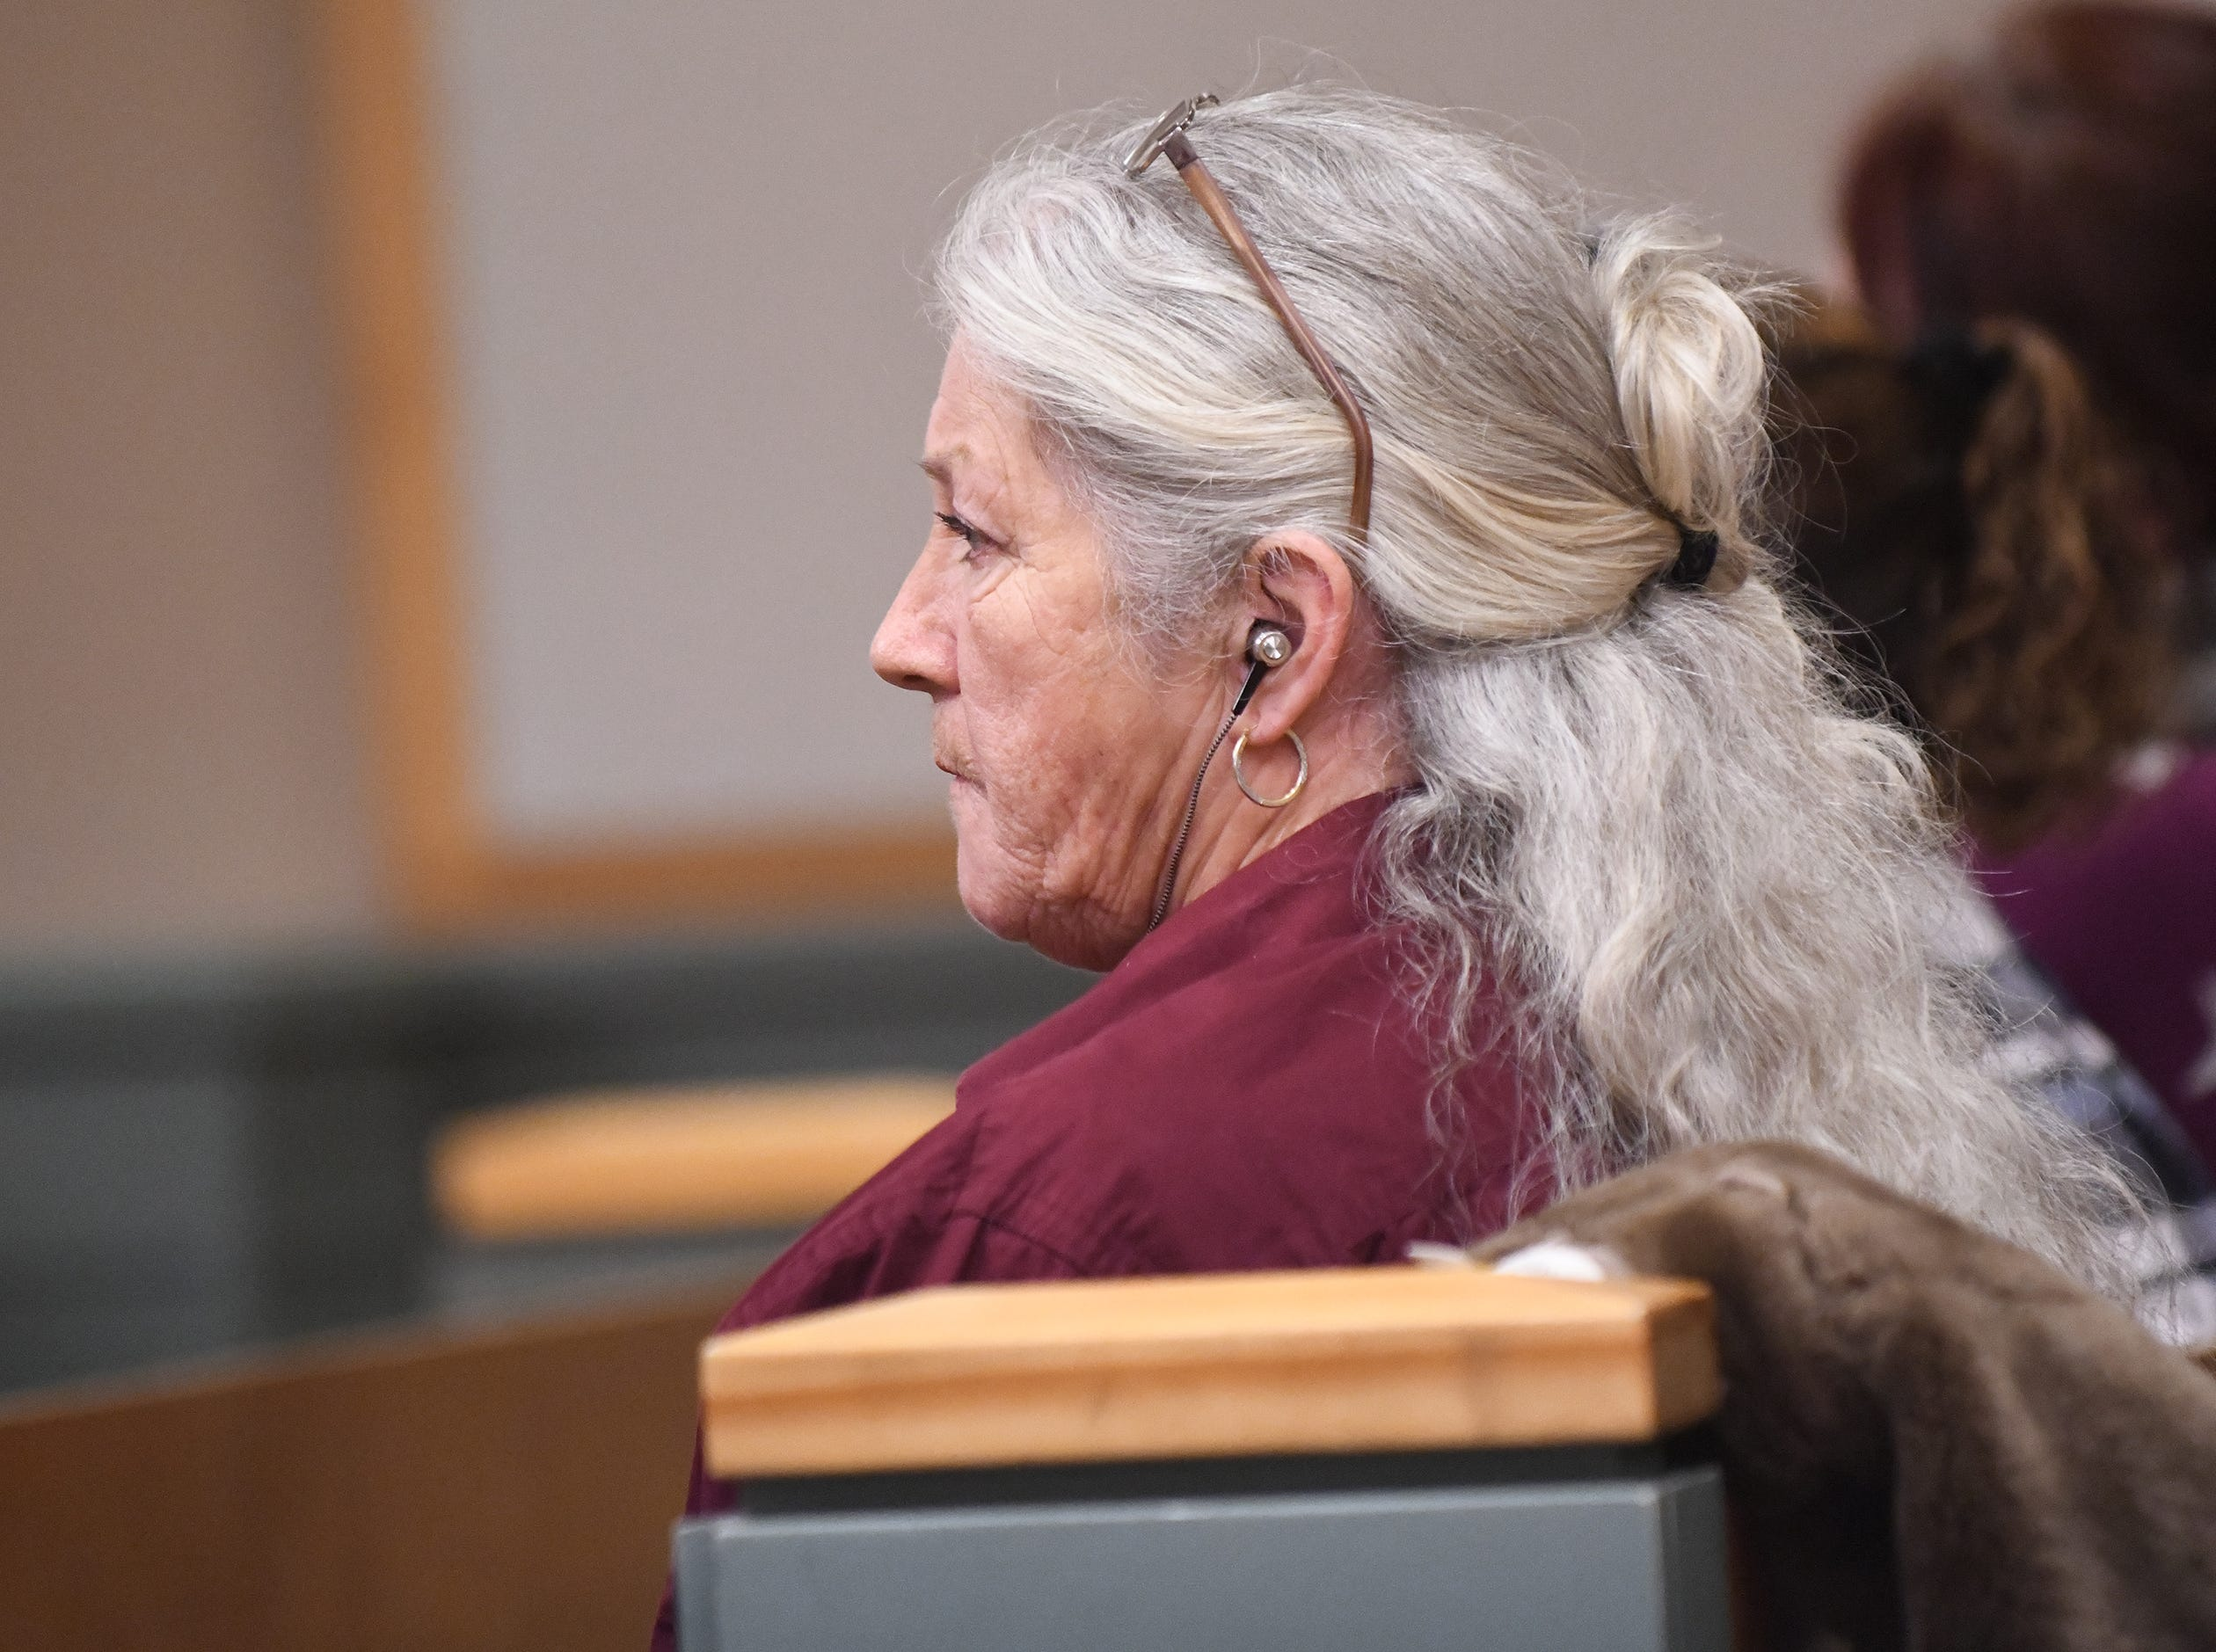 Family members of the late Tara O'Shea-Watson, who was killed inside her Commercial Township home in 2016, listen to testimony on Thursday, January 3, 2019.